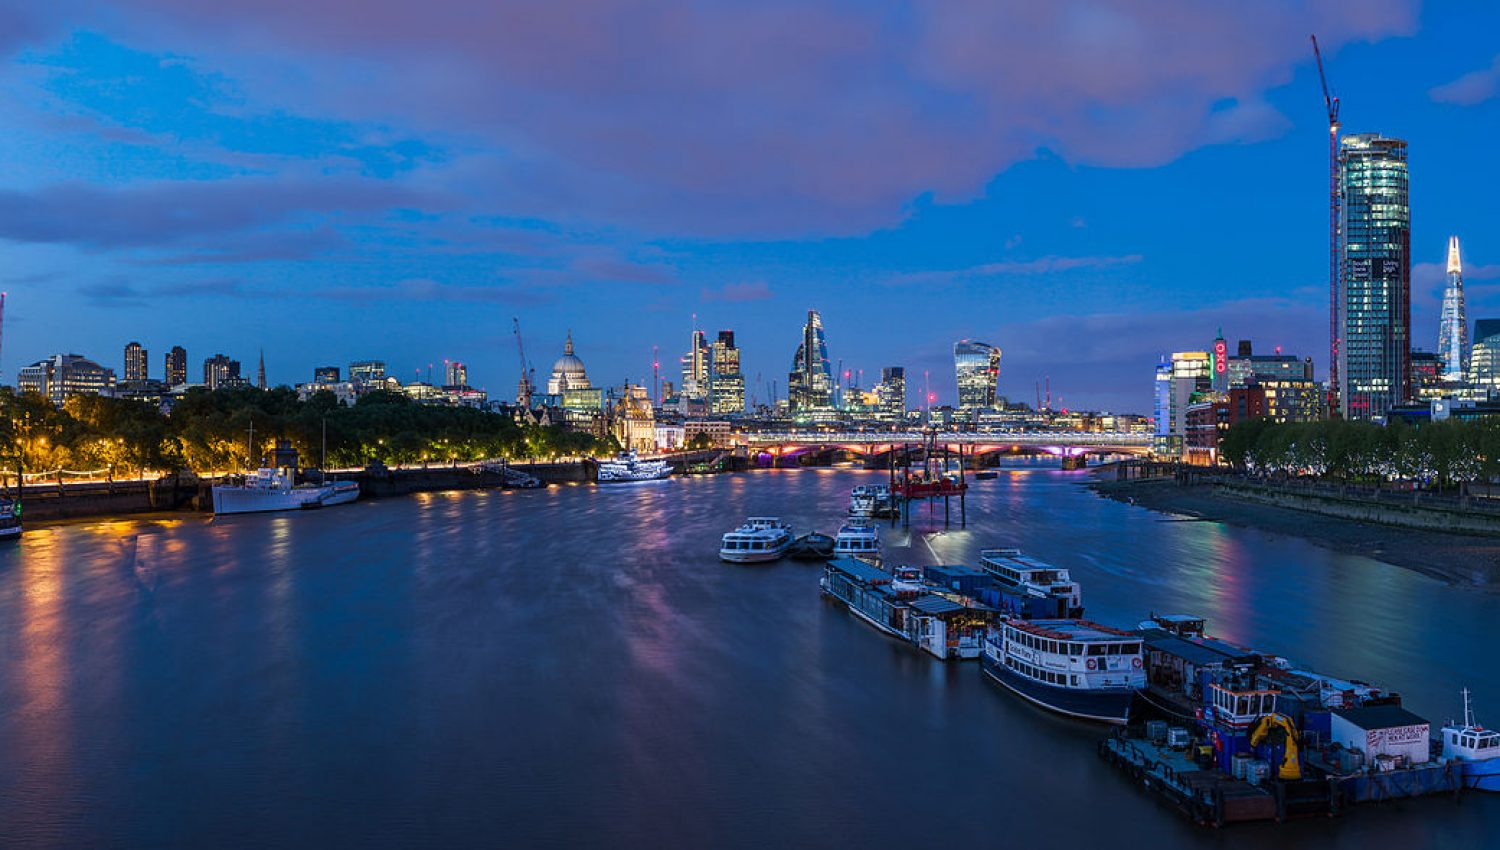 1200px-London_Skyline_from_Waterloo_Bridge,_London,_UK_-_Diliff